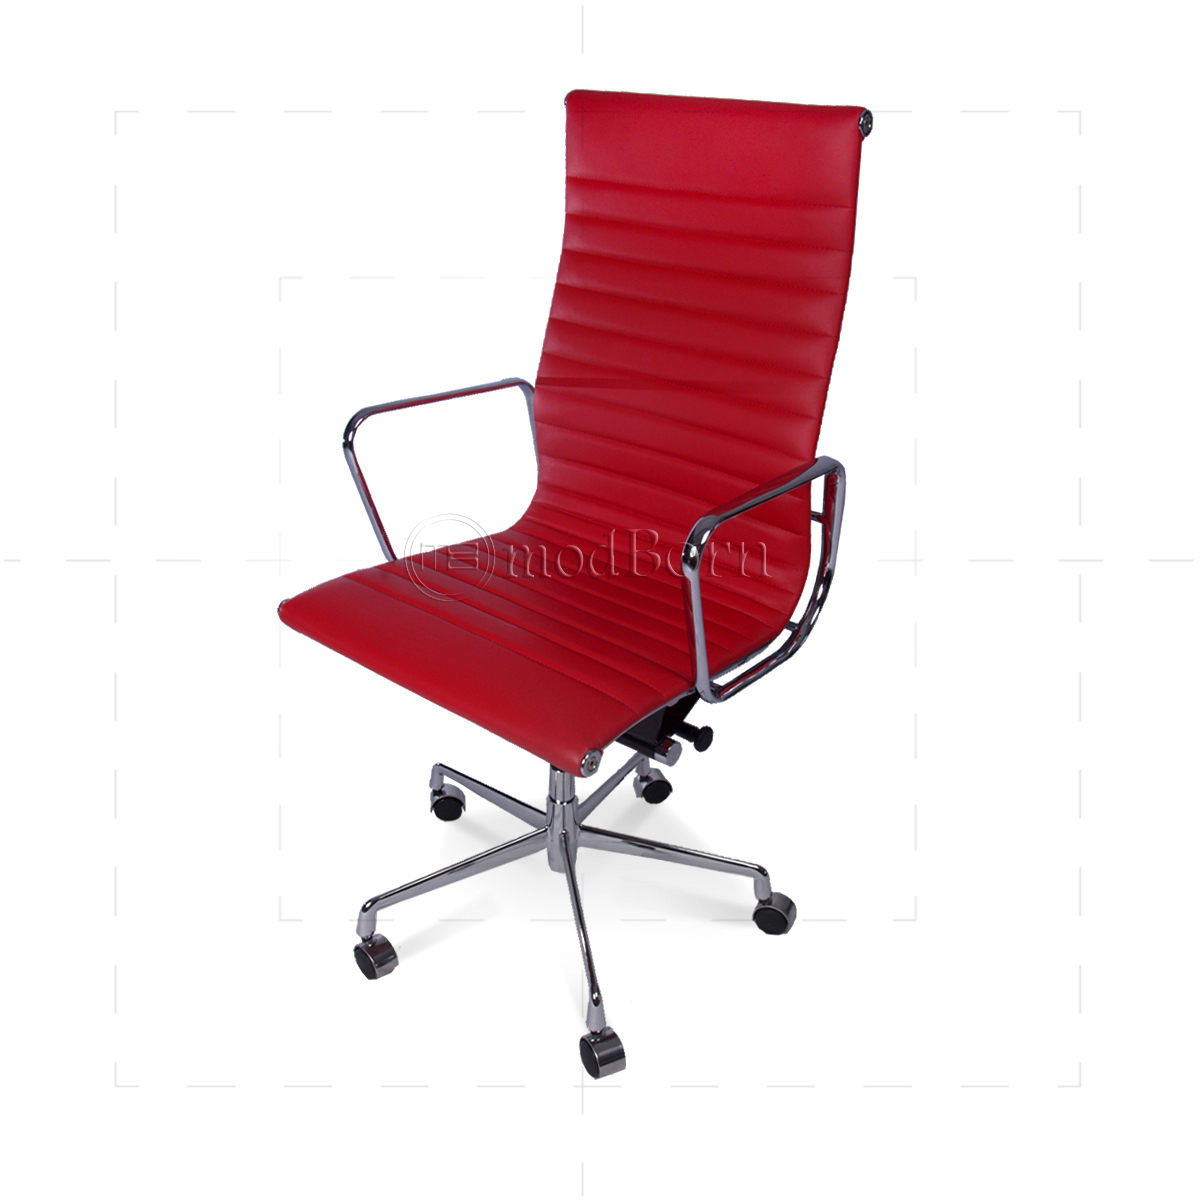 EA119 Eames Style Office Chair High Back Ribbed Red  : eames office highback red side2 closeup 1200x1200 from www.modborn.com size 1200 x 1200 jpeg 341kB